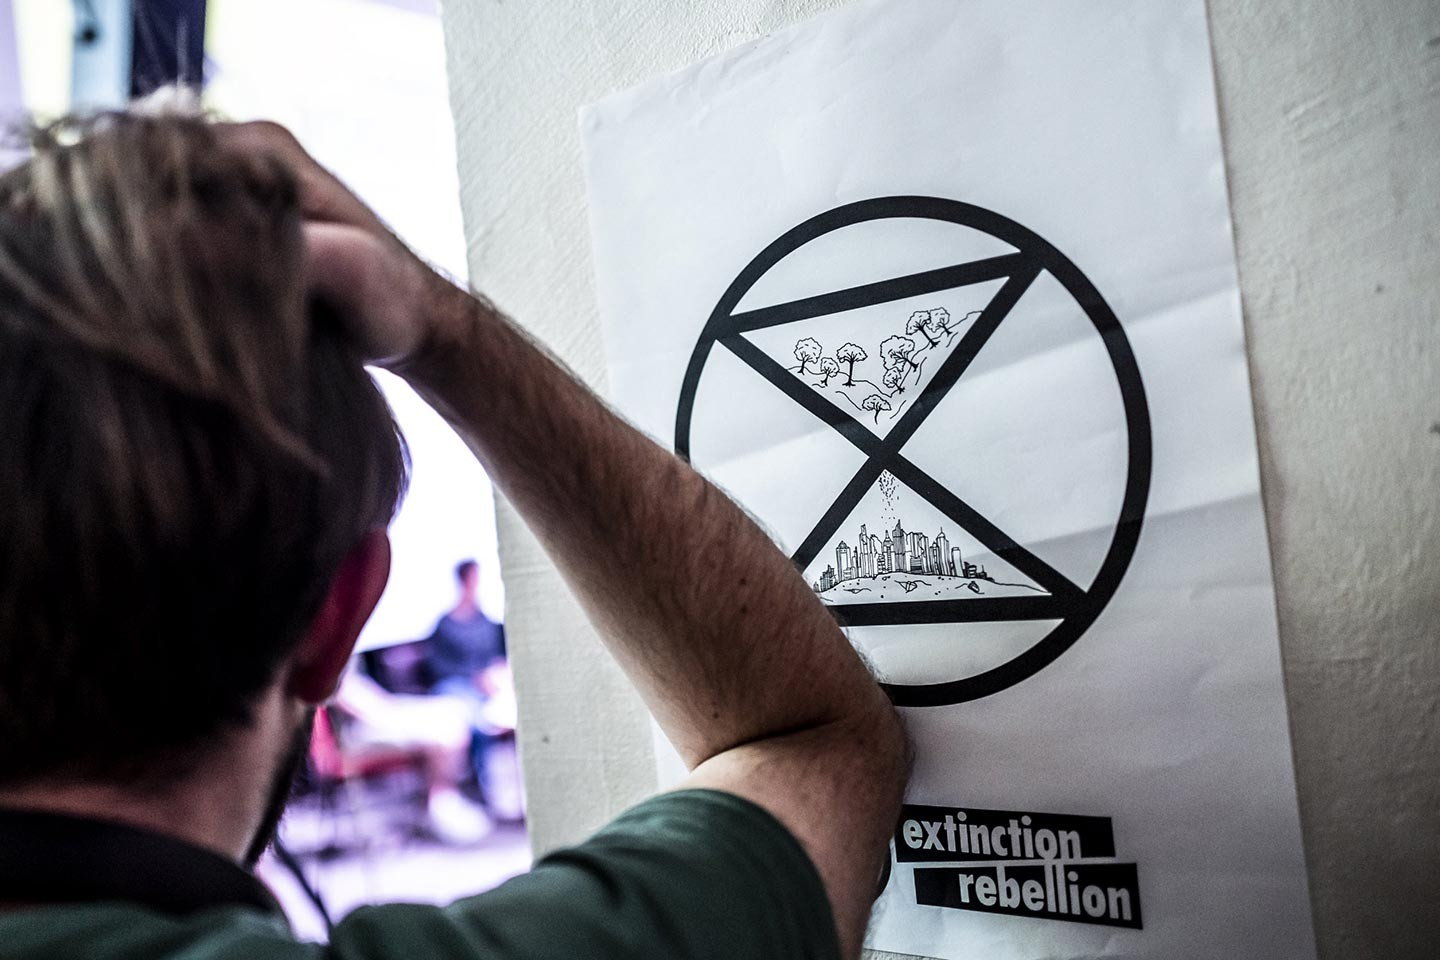 Extinction Rebellion et ses militants de « Base »